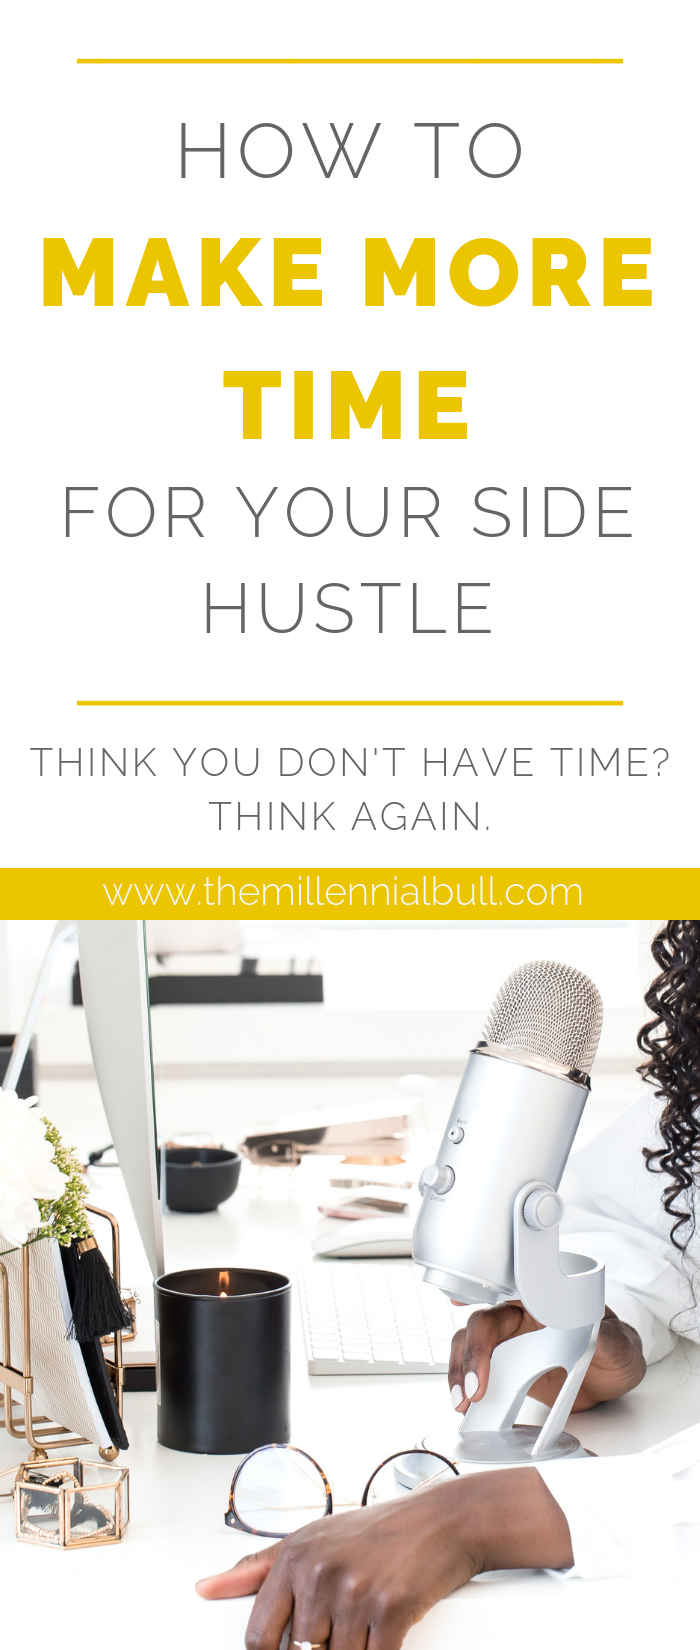 make more time side hustle01 - How To Make More Time For Your Side Hustle